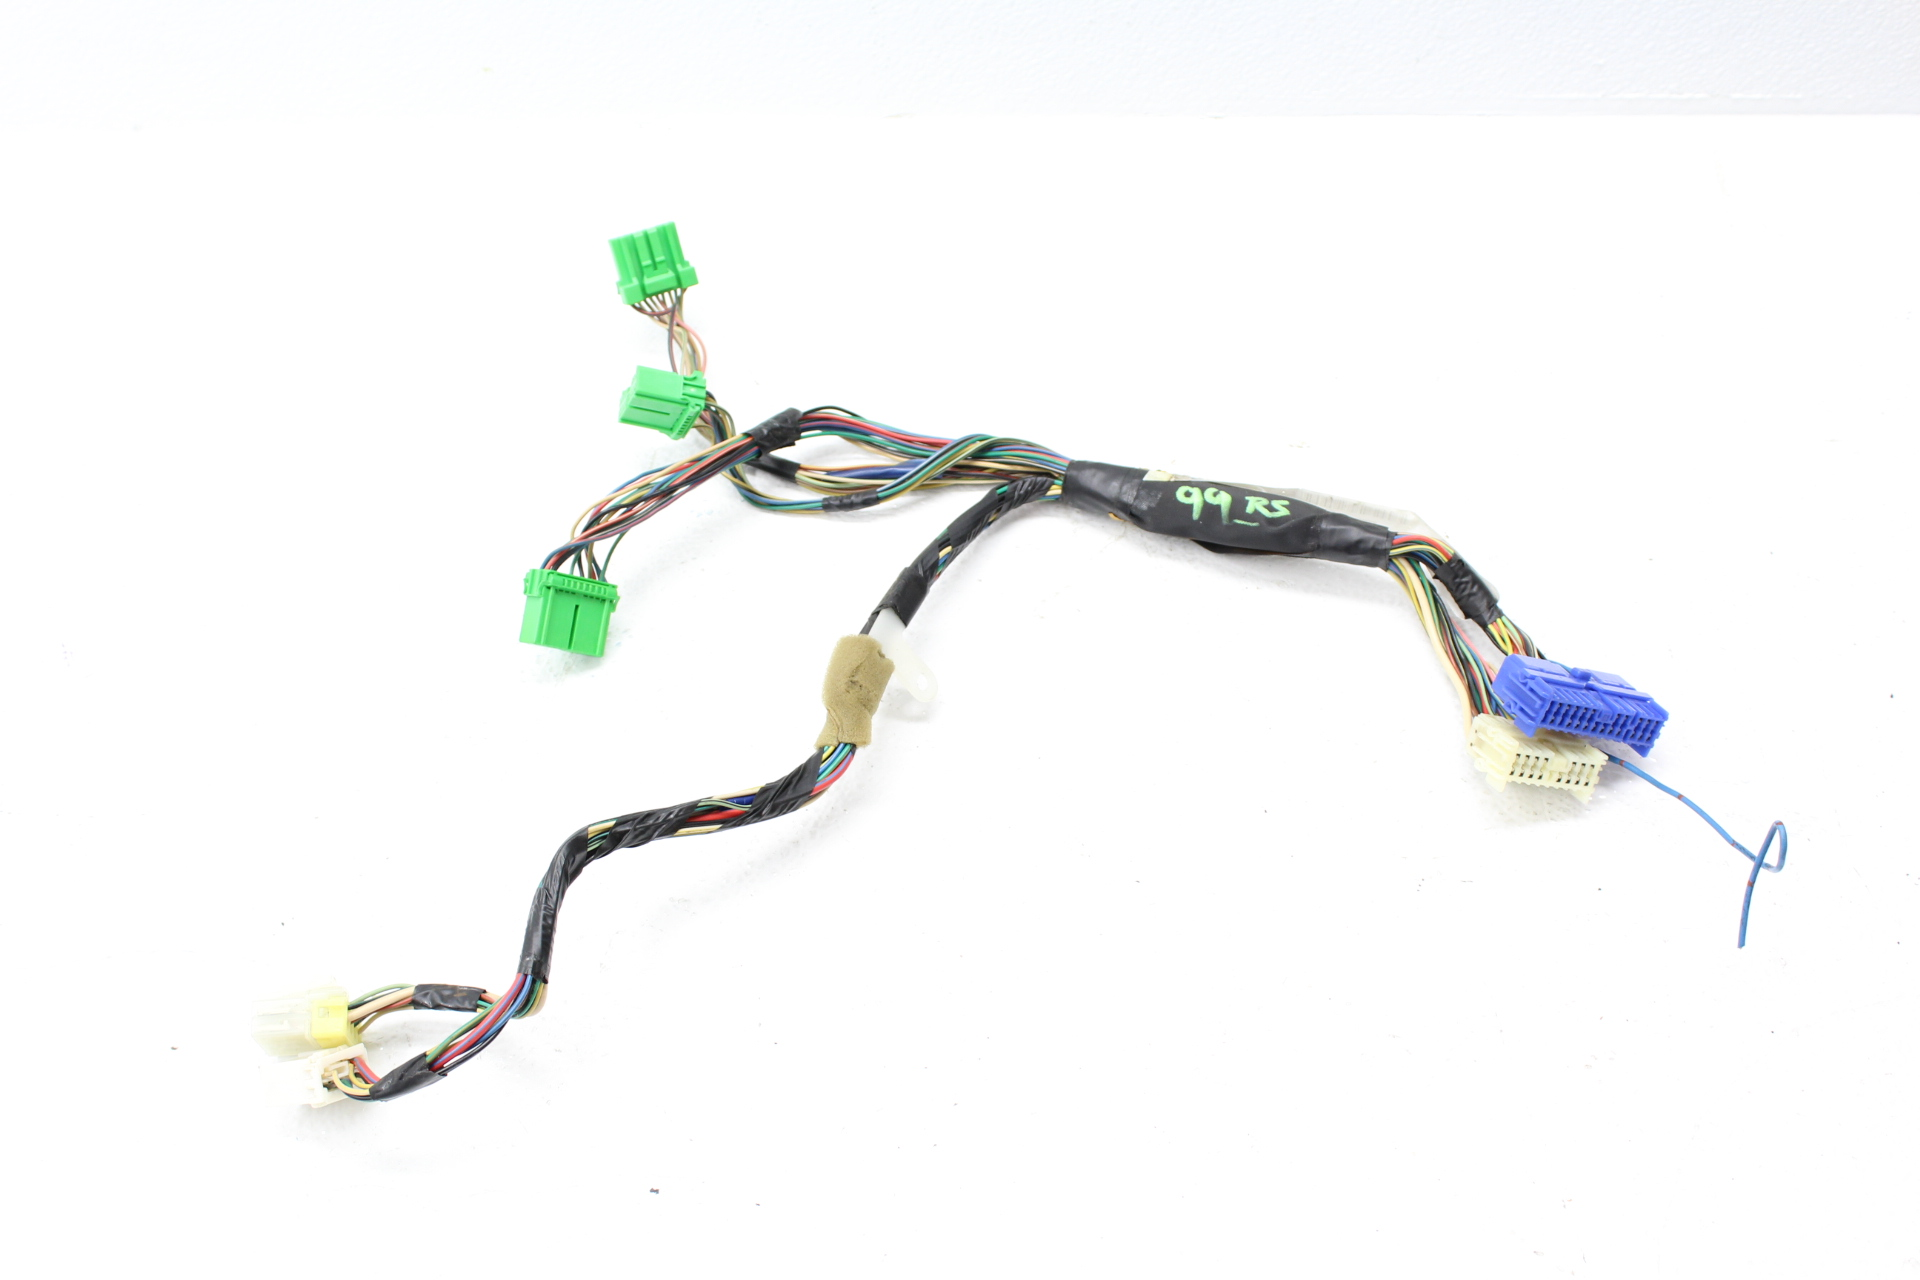 Instrument Cluster Wiring Harness 2008 Impreza Electrical Subaru Trailer Diagram 1998 2001 2 5 Rs Gc8 Gauge